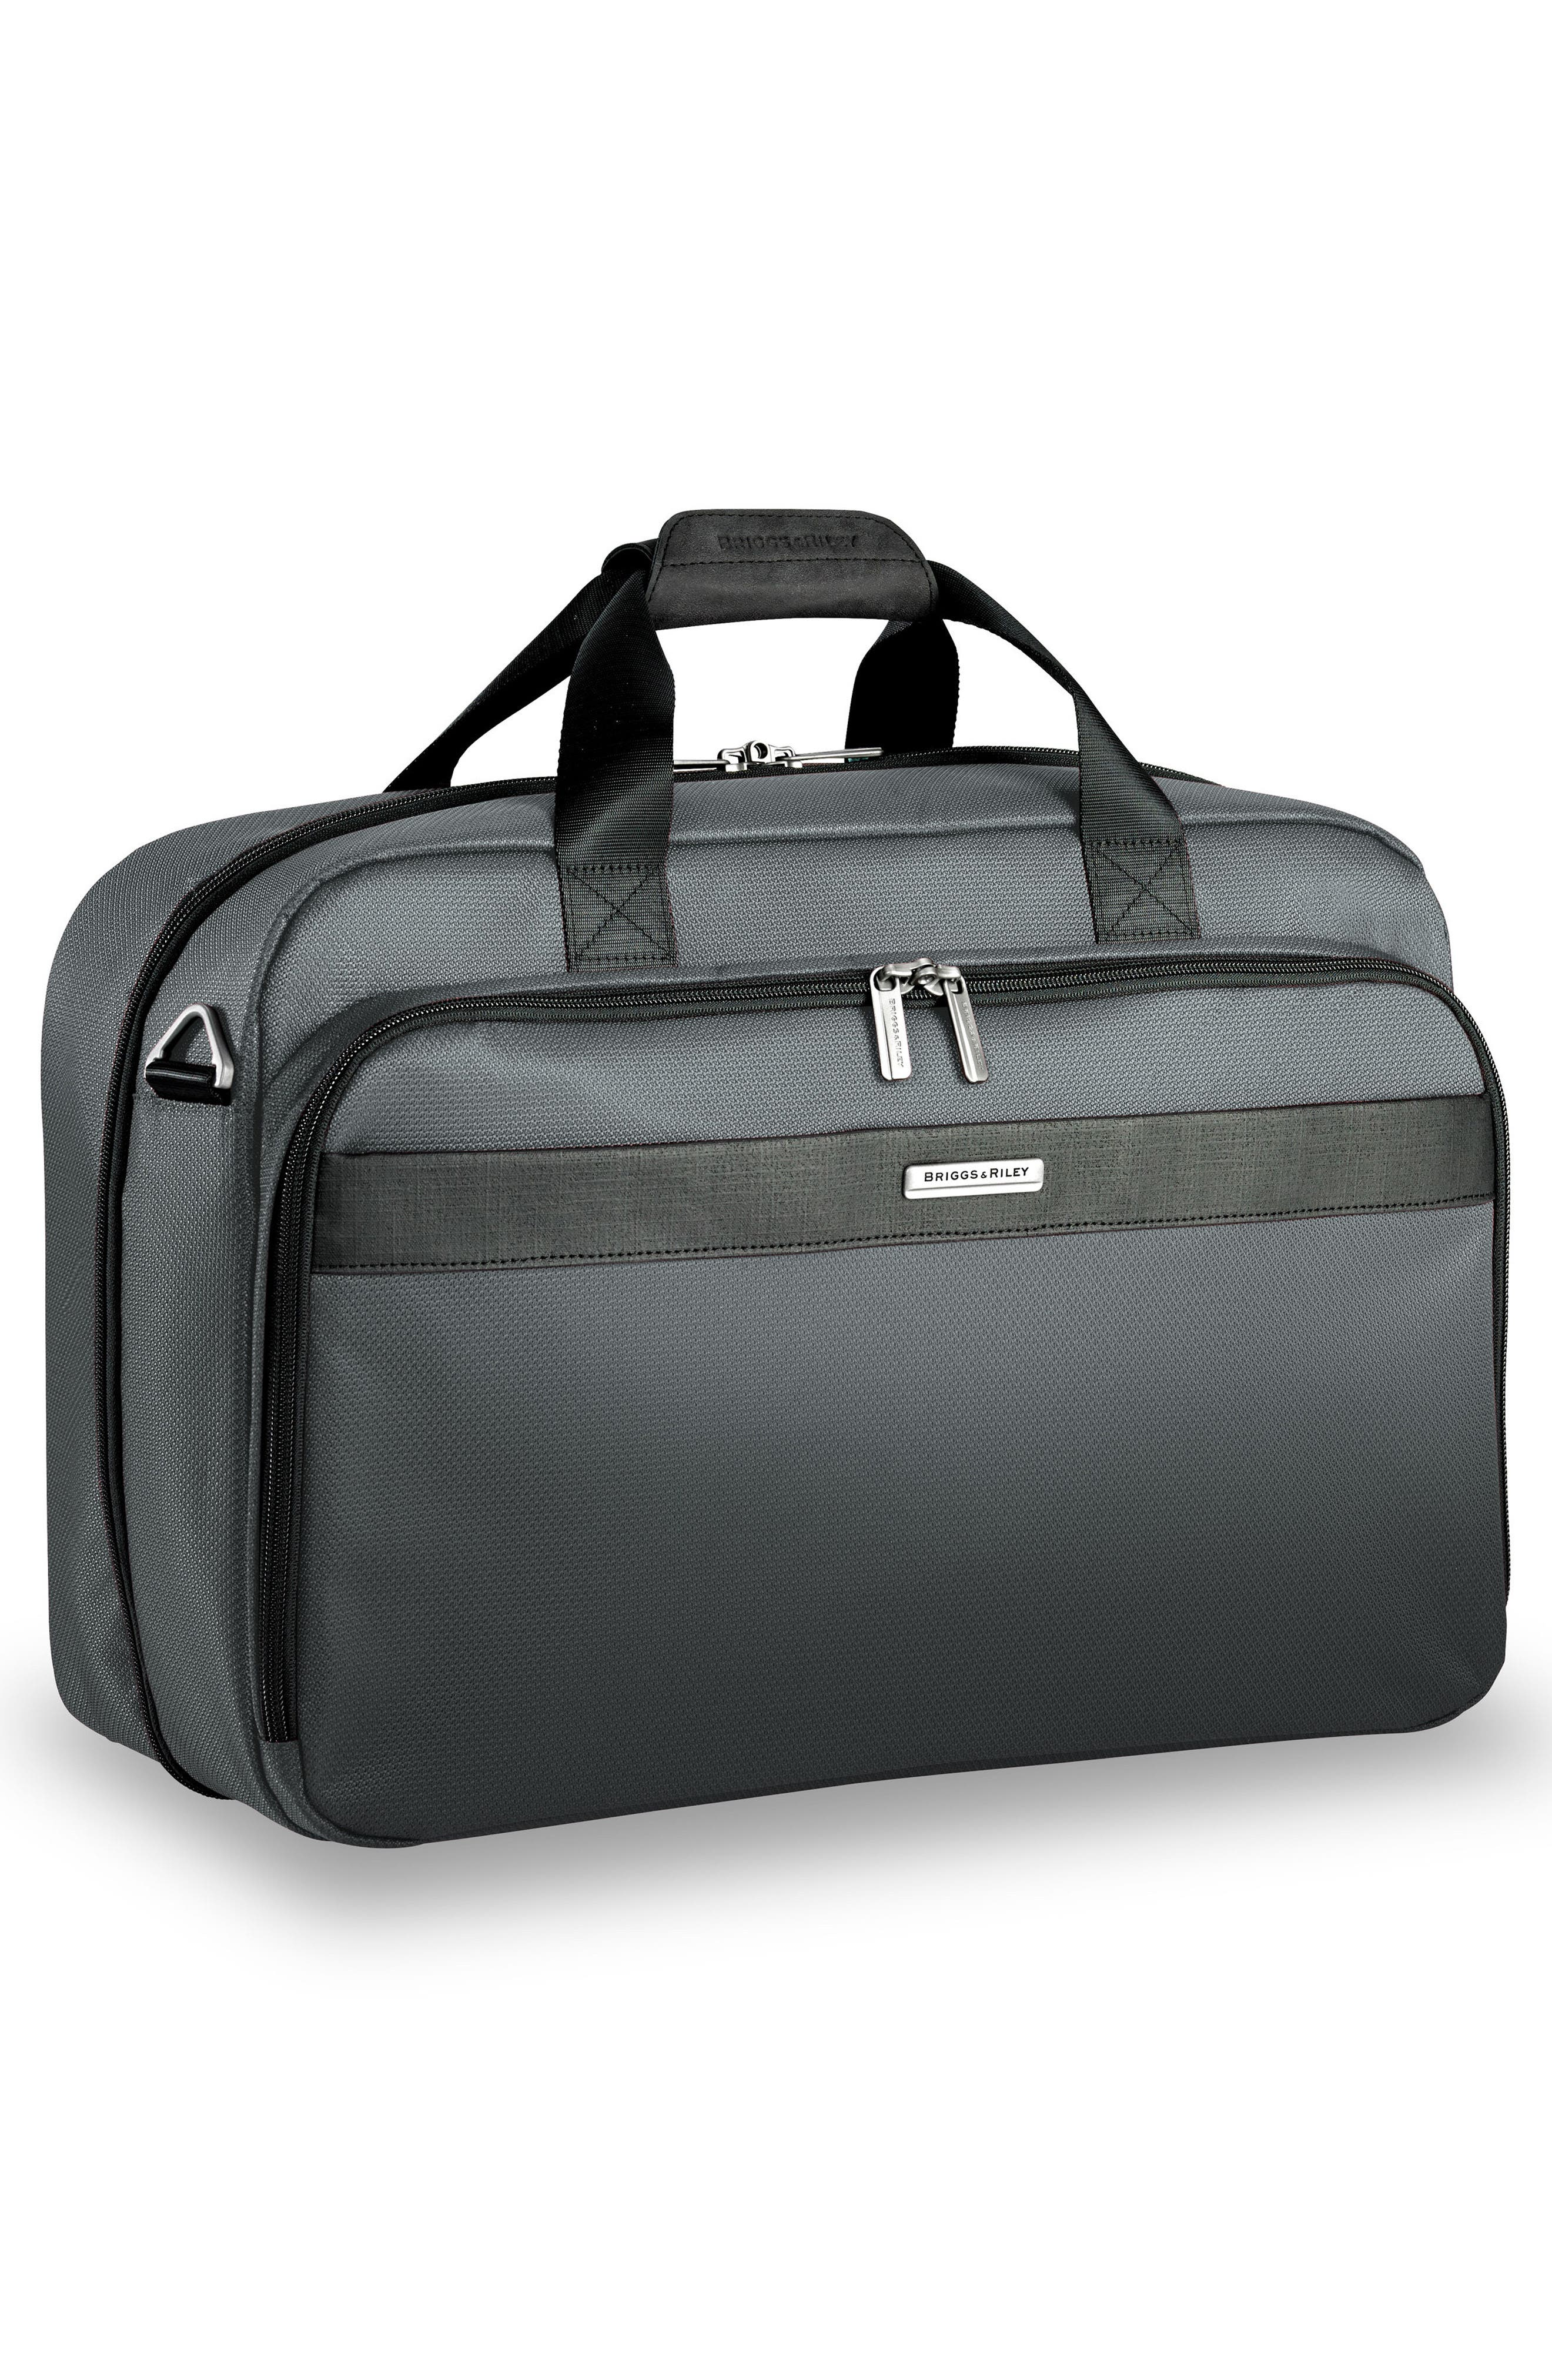 Transcend 400 Cabin Bag,                             Alternate thumbnail 10, color,                             Slate Grey